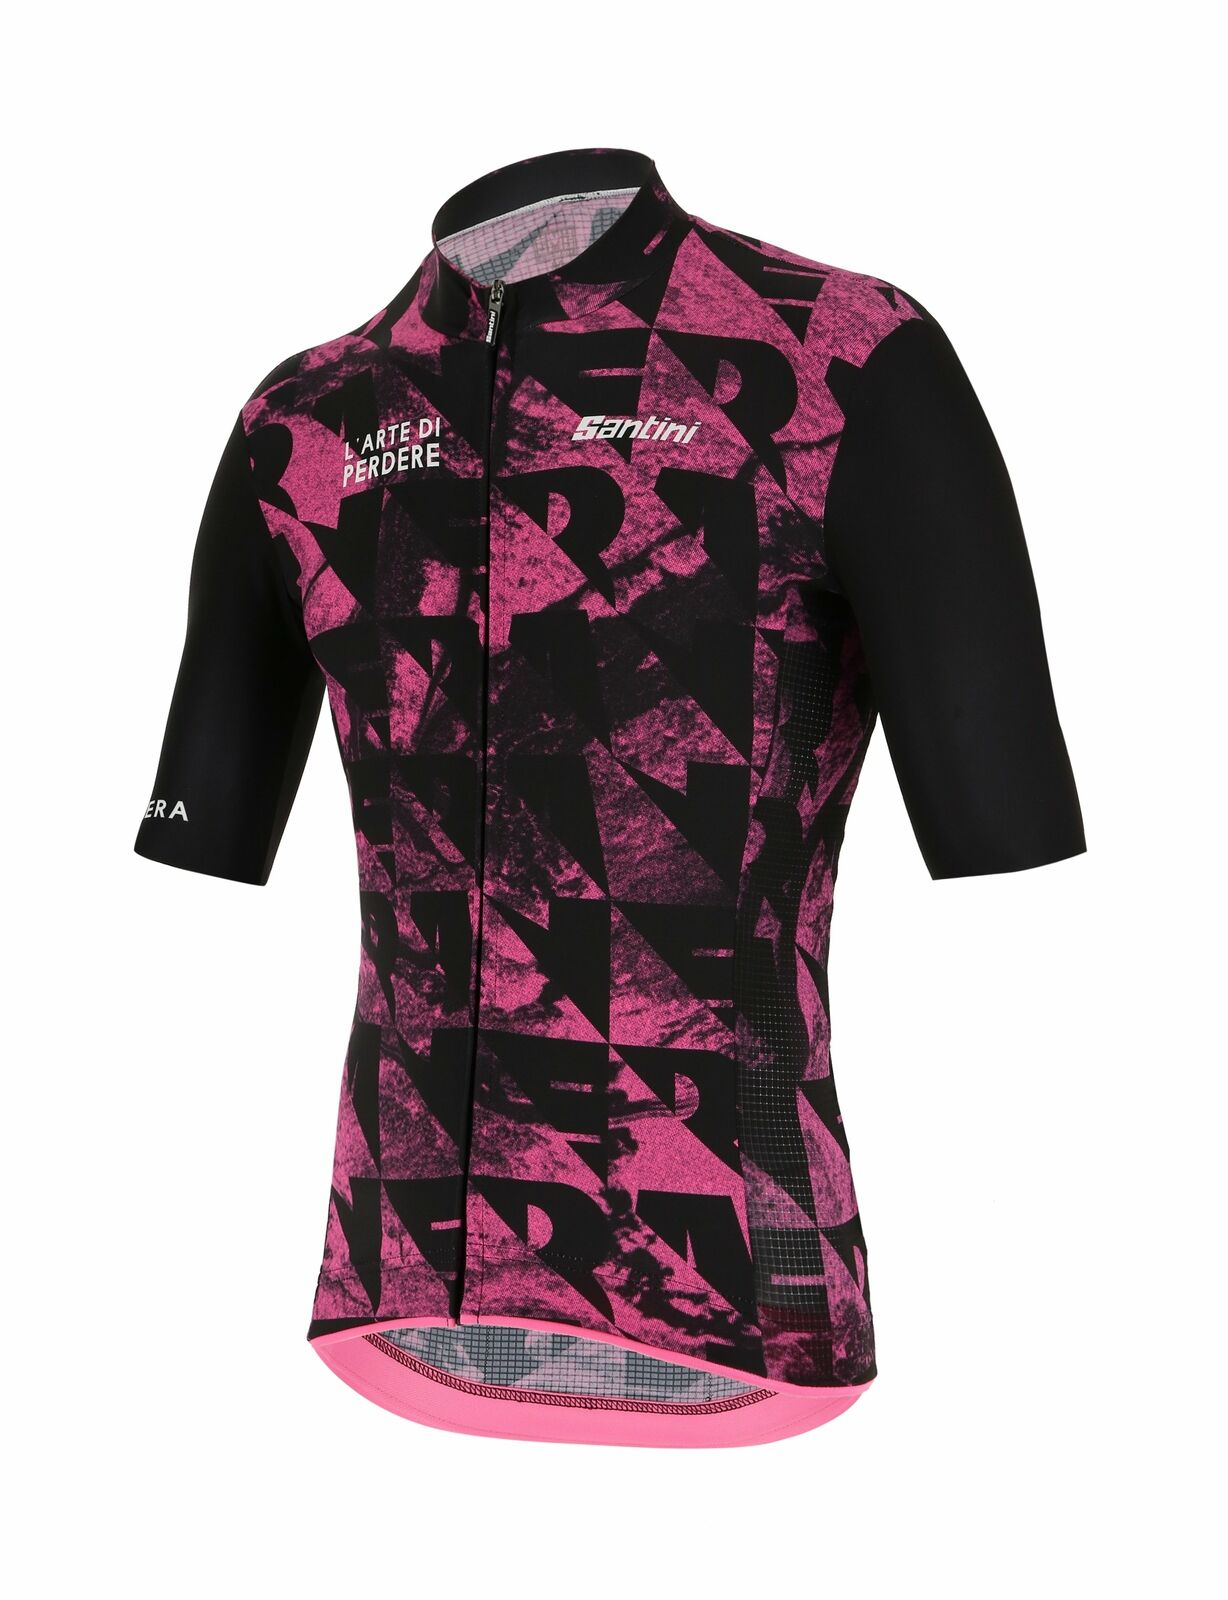 2019 Maglia Nera Cycling Jersey - Made in  by Santini